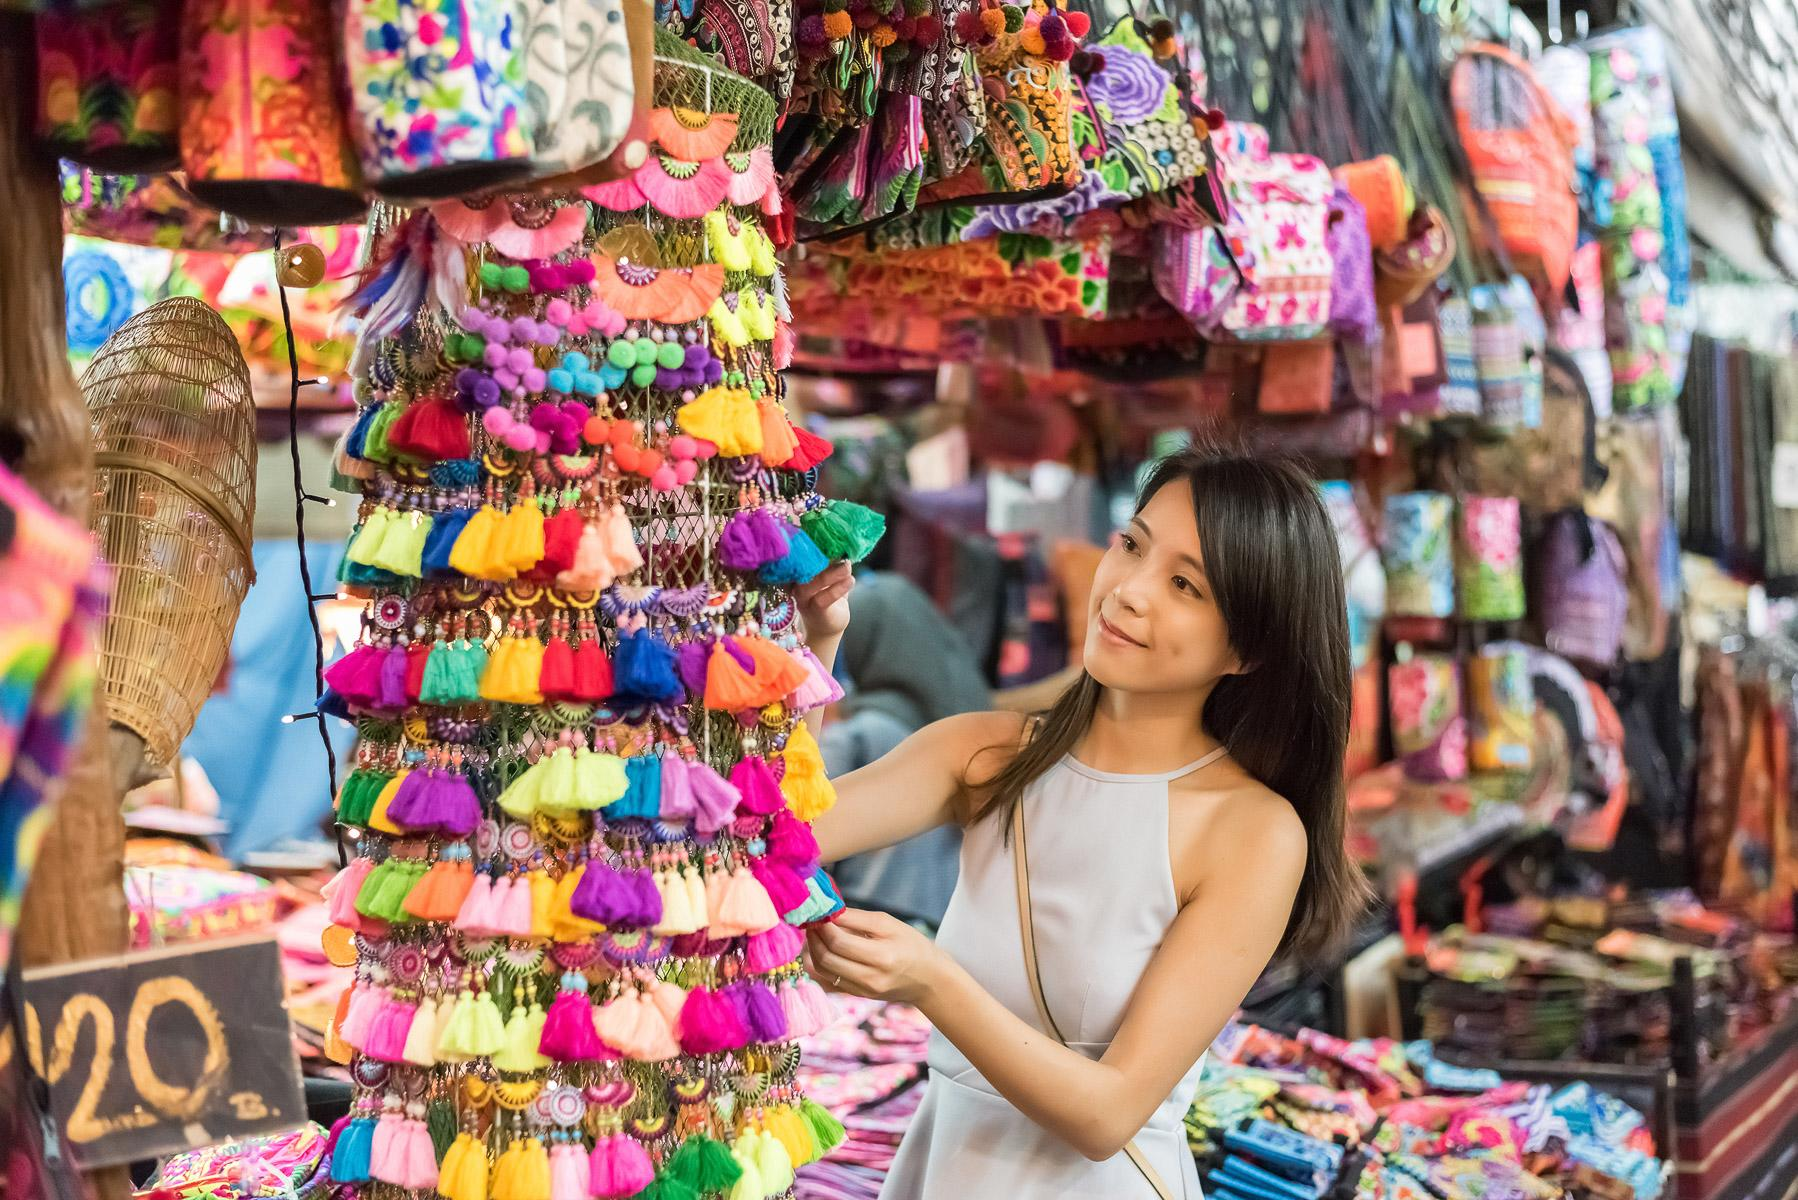 How to Bargain While Traveling